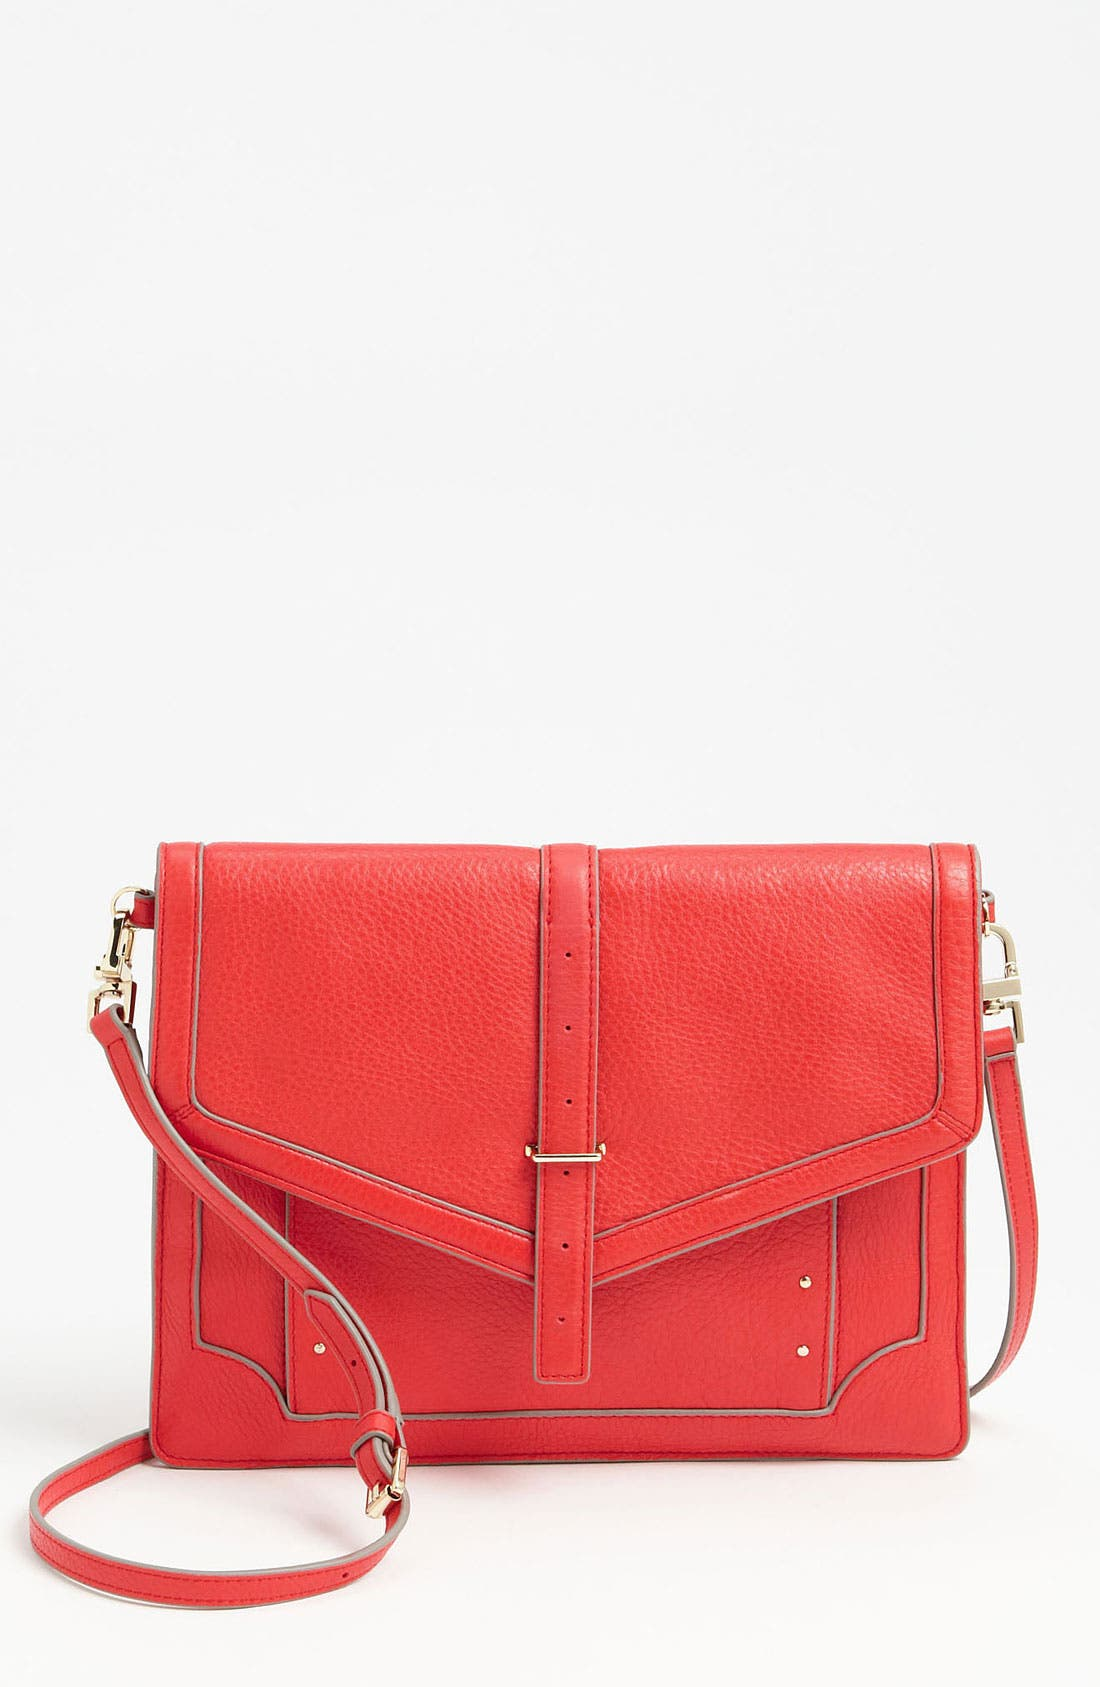 Main Image - Tory Burch Leather Crossbody Bag